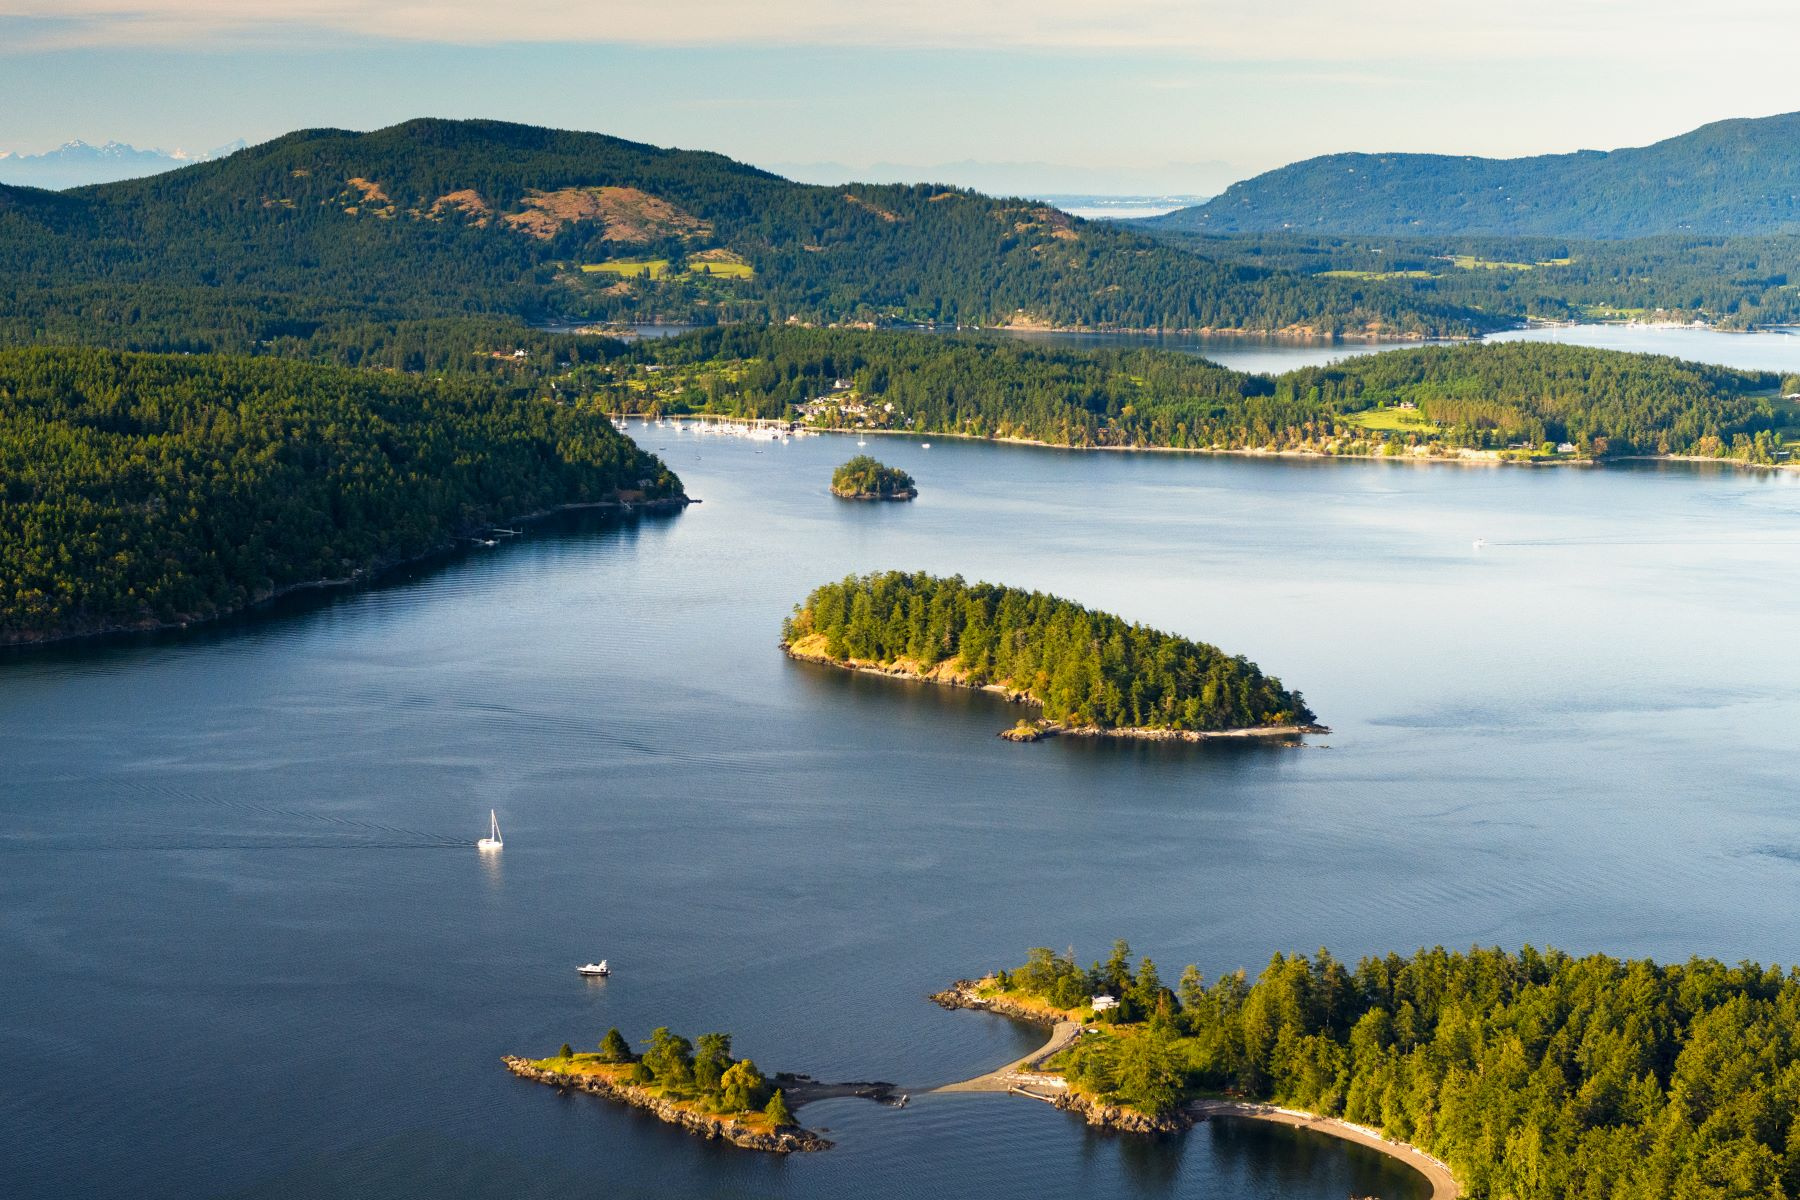 Land for Sale at xxx Reef Island, Orcas Island, WA 98243 xxx Reef Island Deer Harbor, Washington 98243 United States